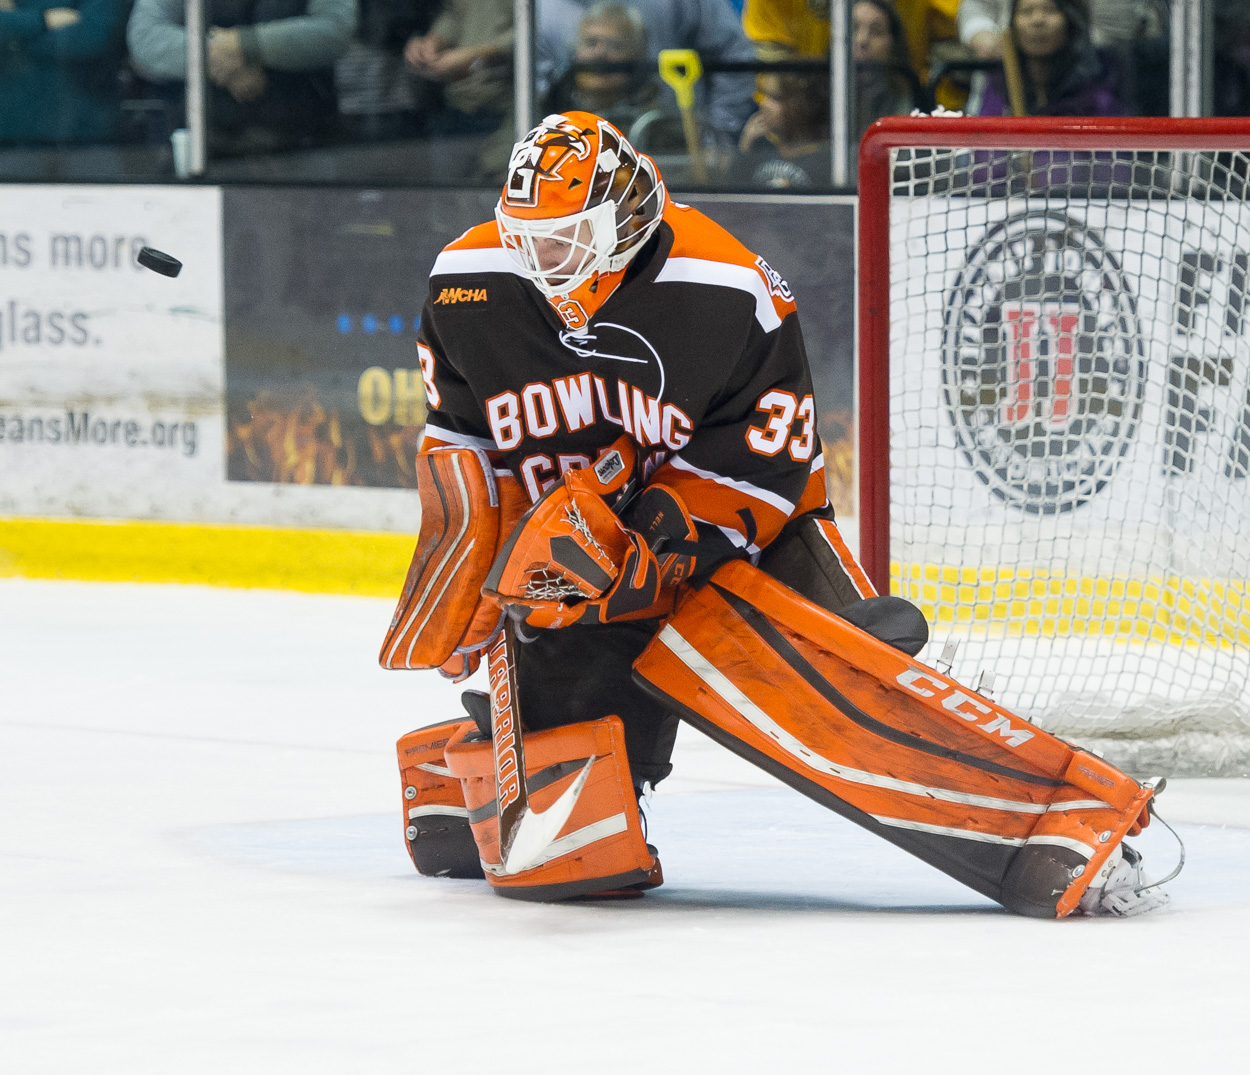 BG's Nell inks deal with NHL Rangers